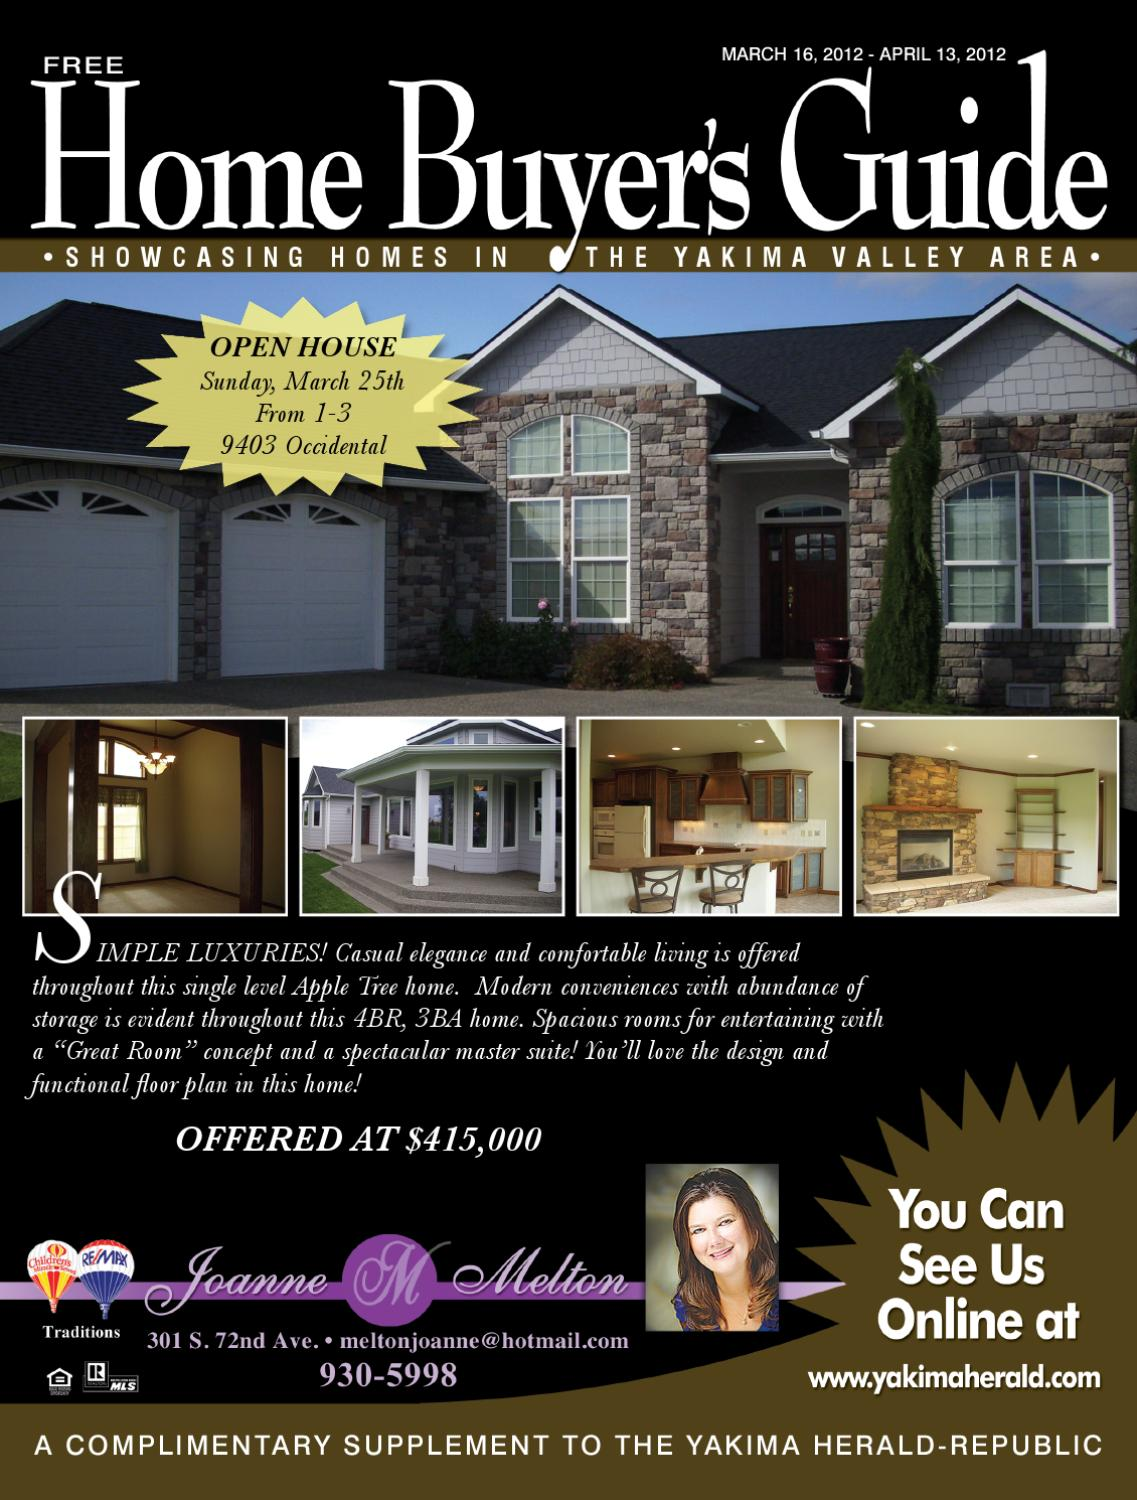 a41e10929475 Home Buyers Guide - Mar April 2012 by Yakima Herald-Republic - issuu